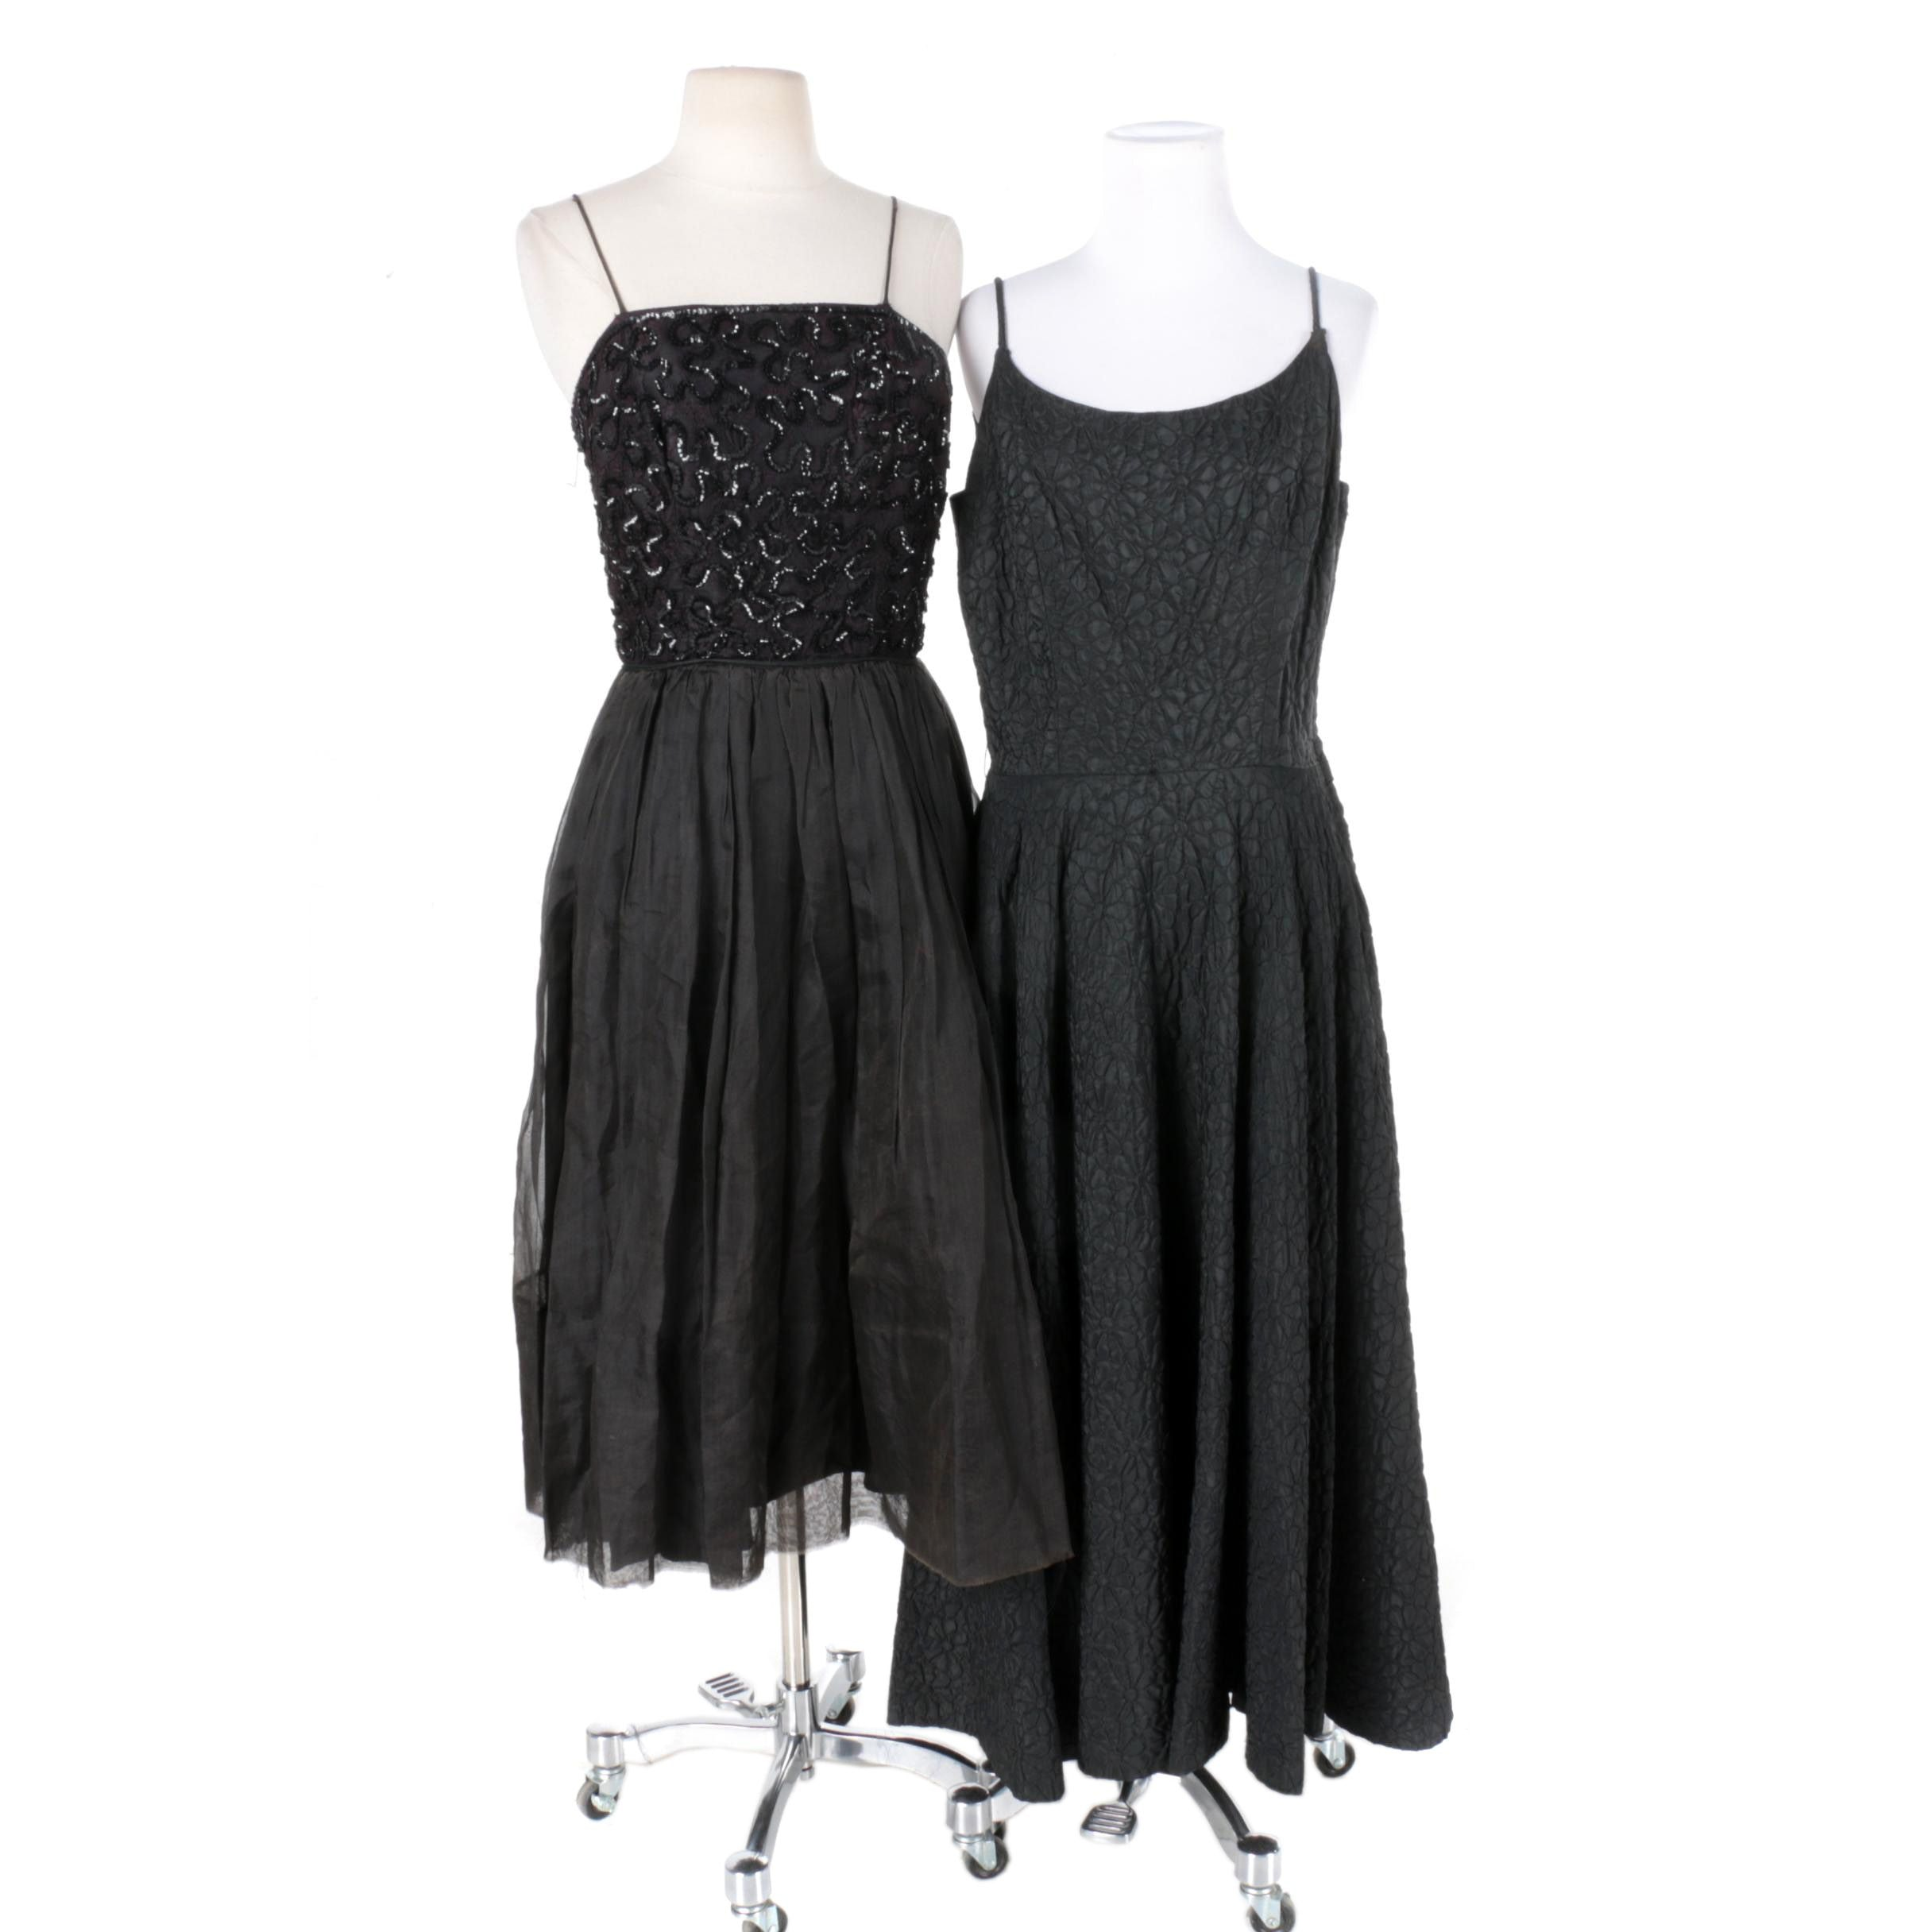 1950s Vintage Black Cocktail Dresses